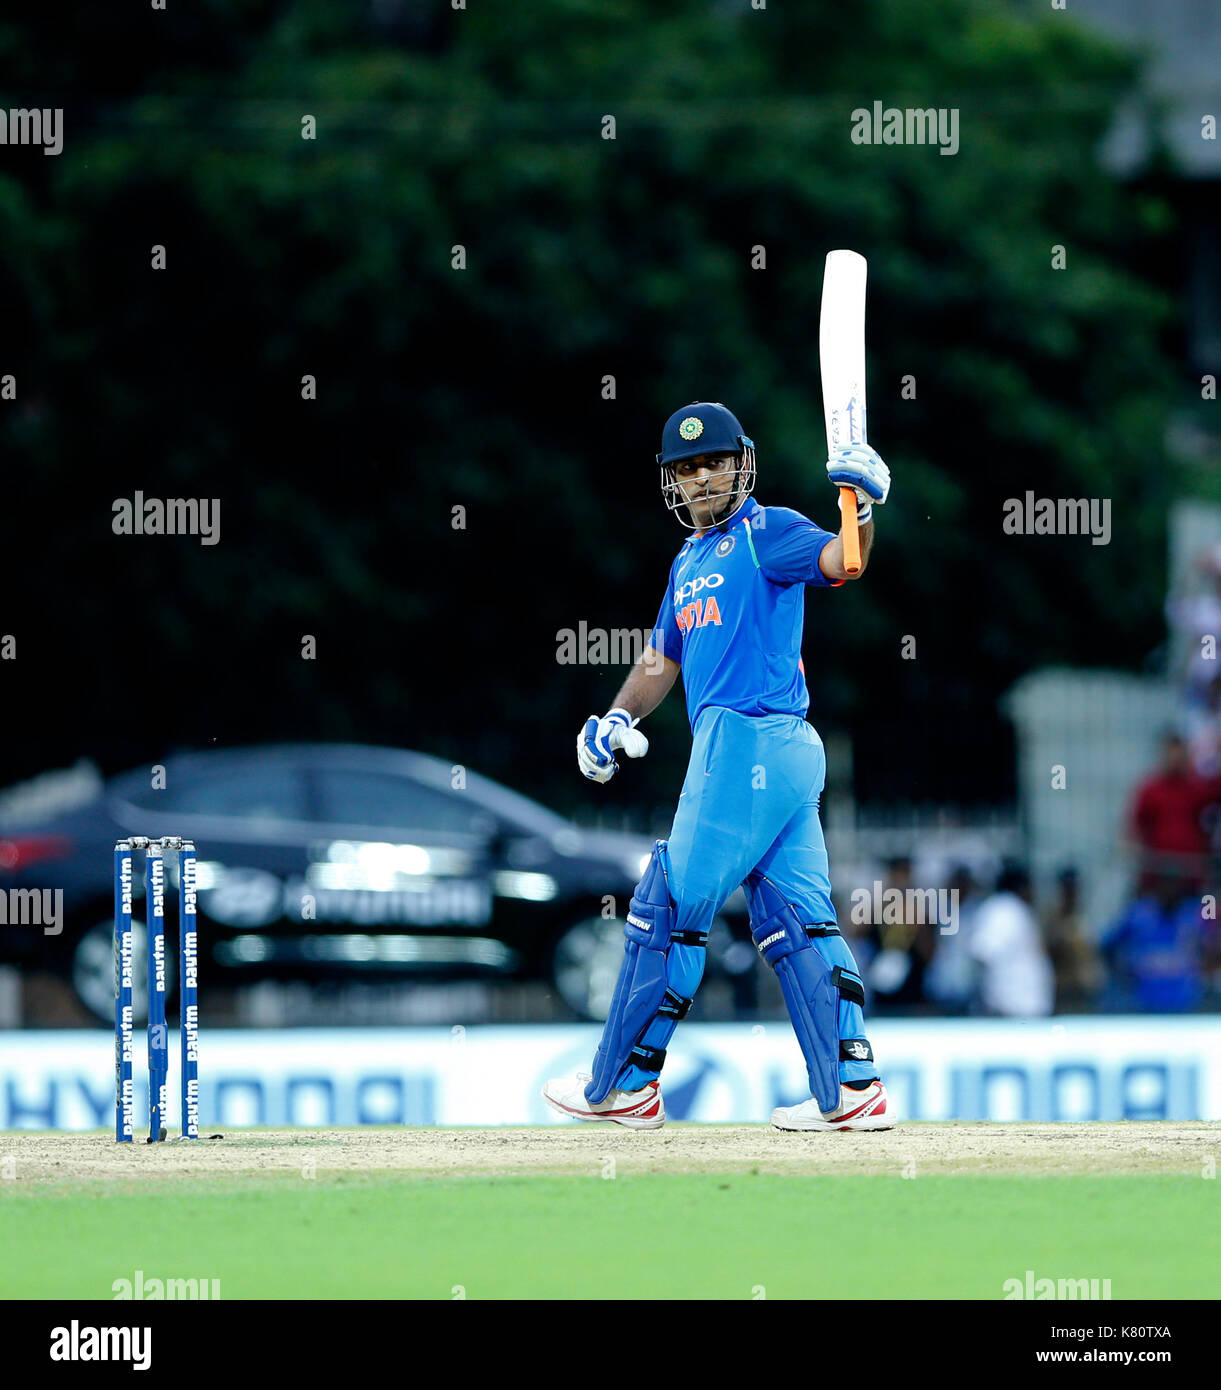 Ms Dhoni High Resolution Stock Photography And Images Alamy